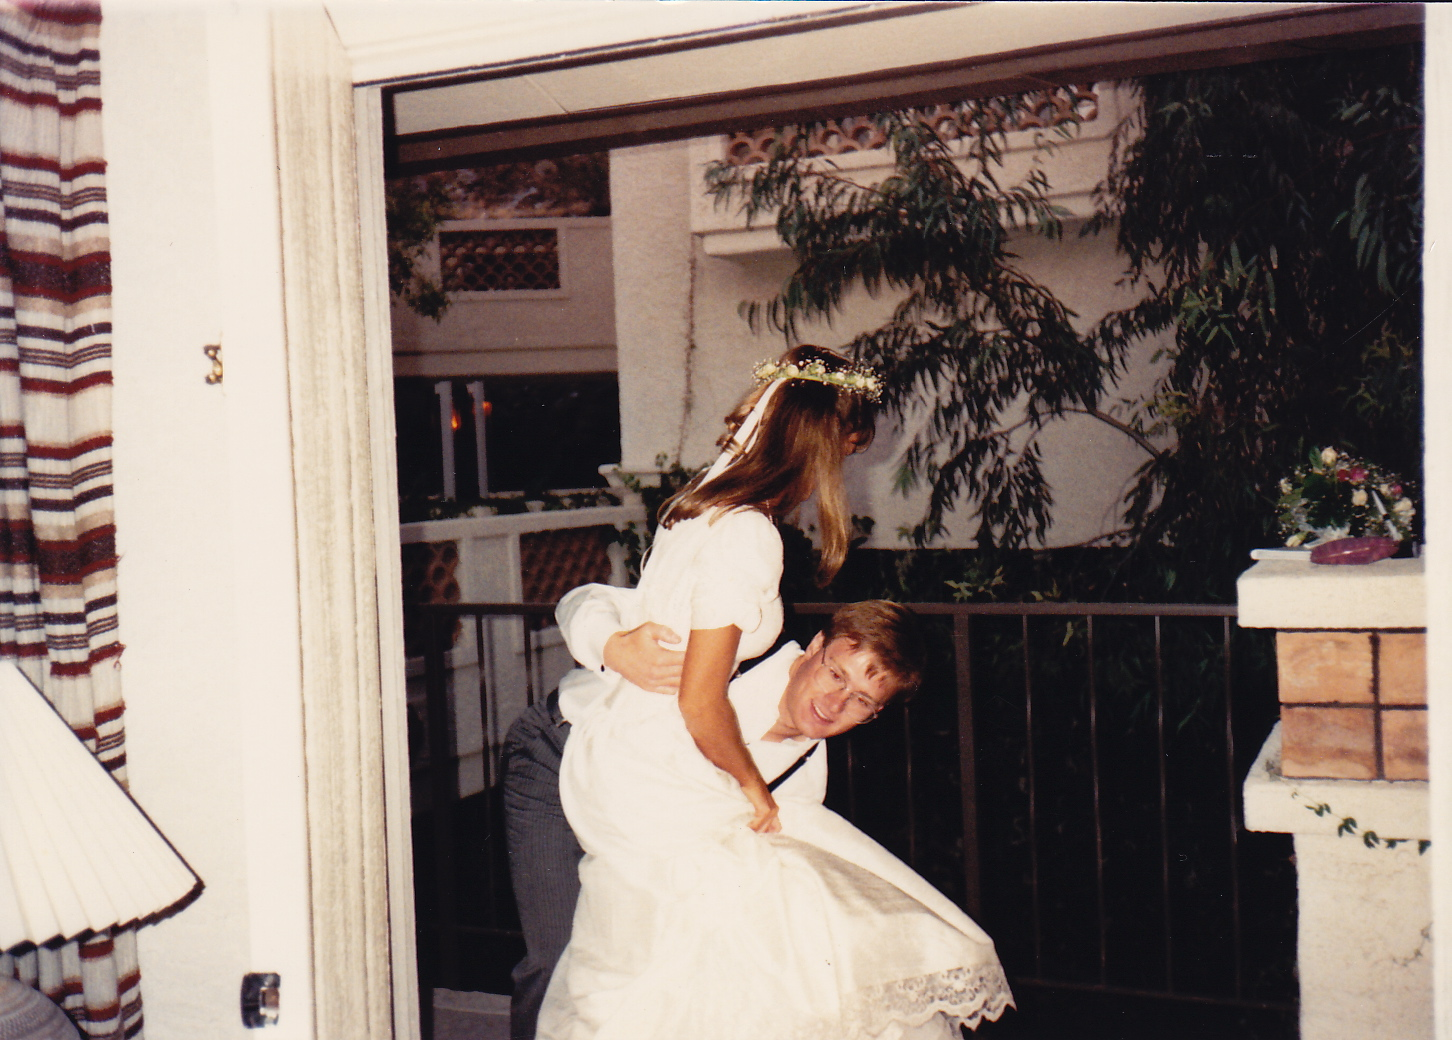 After the wedding 11-4-89